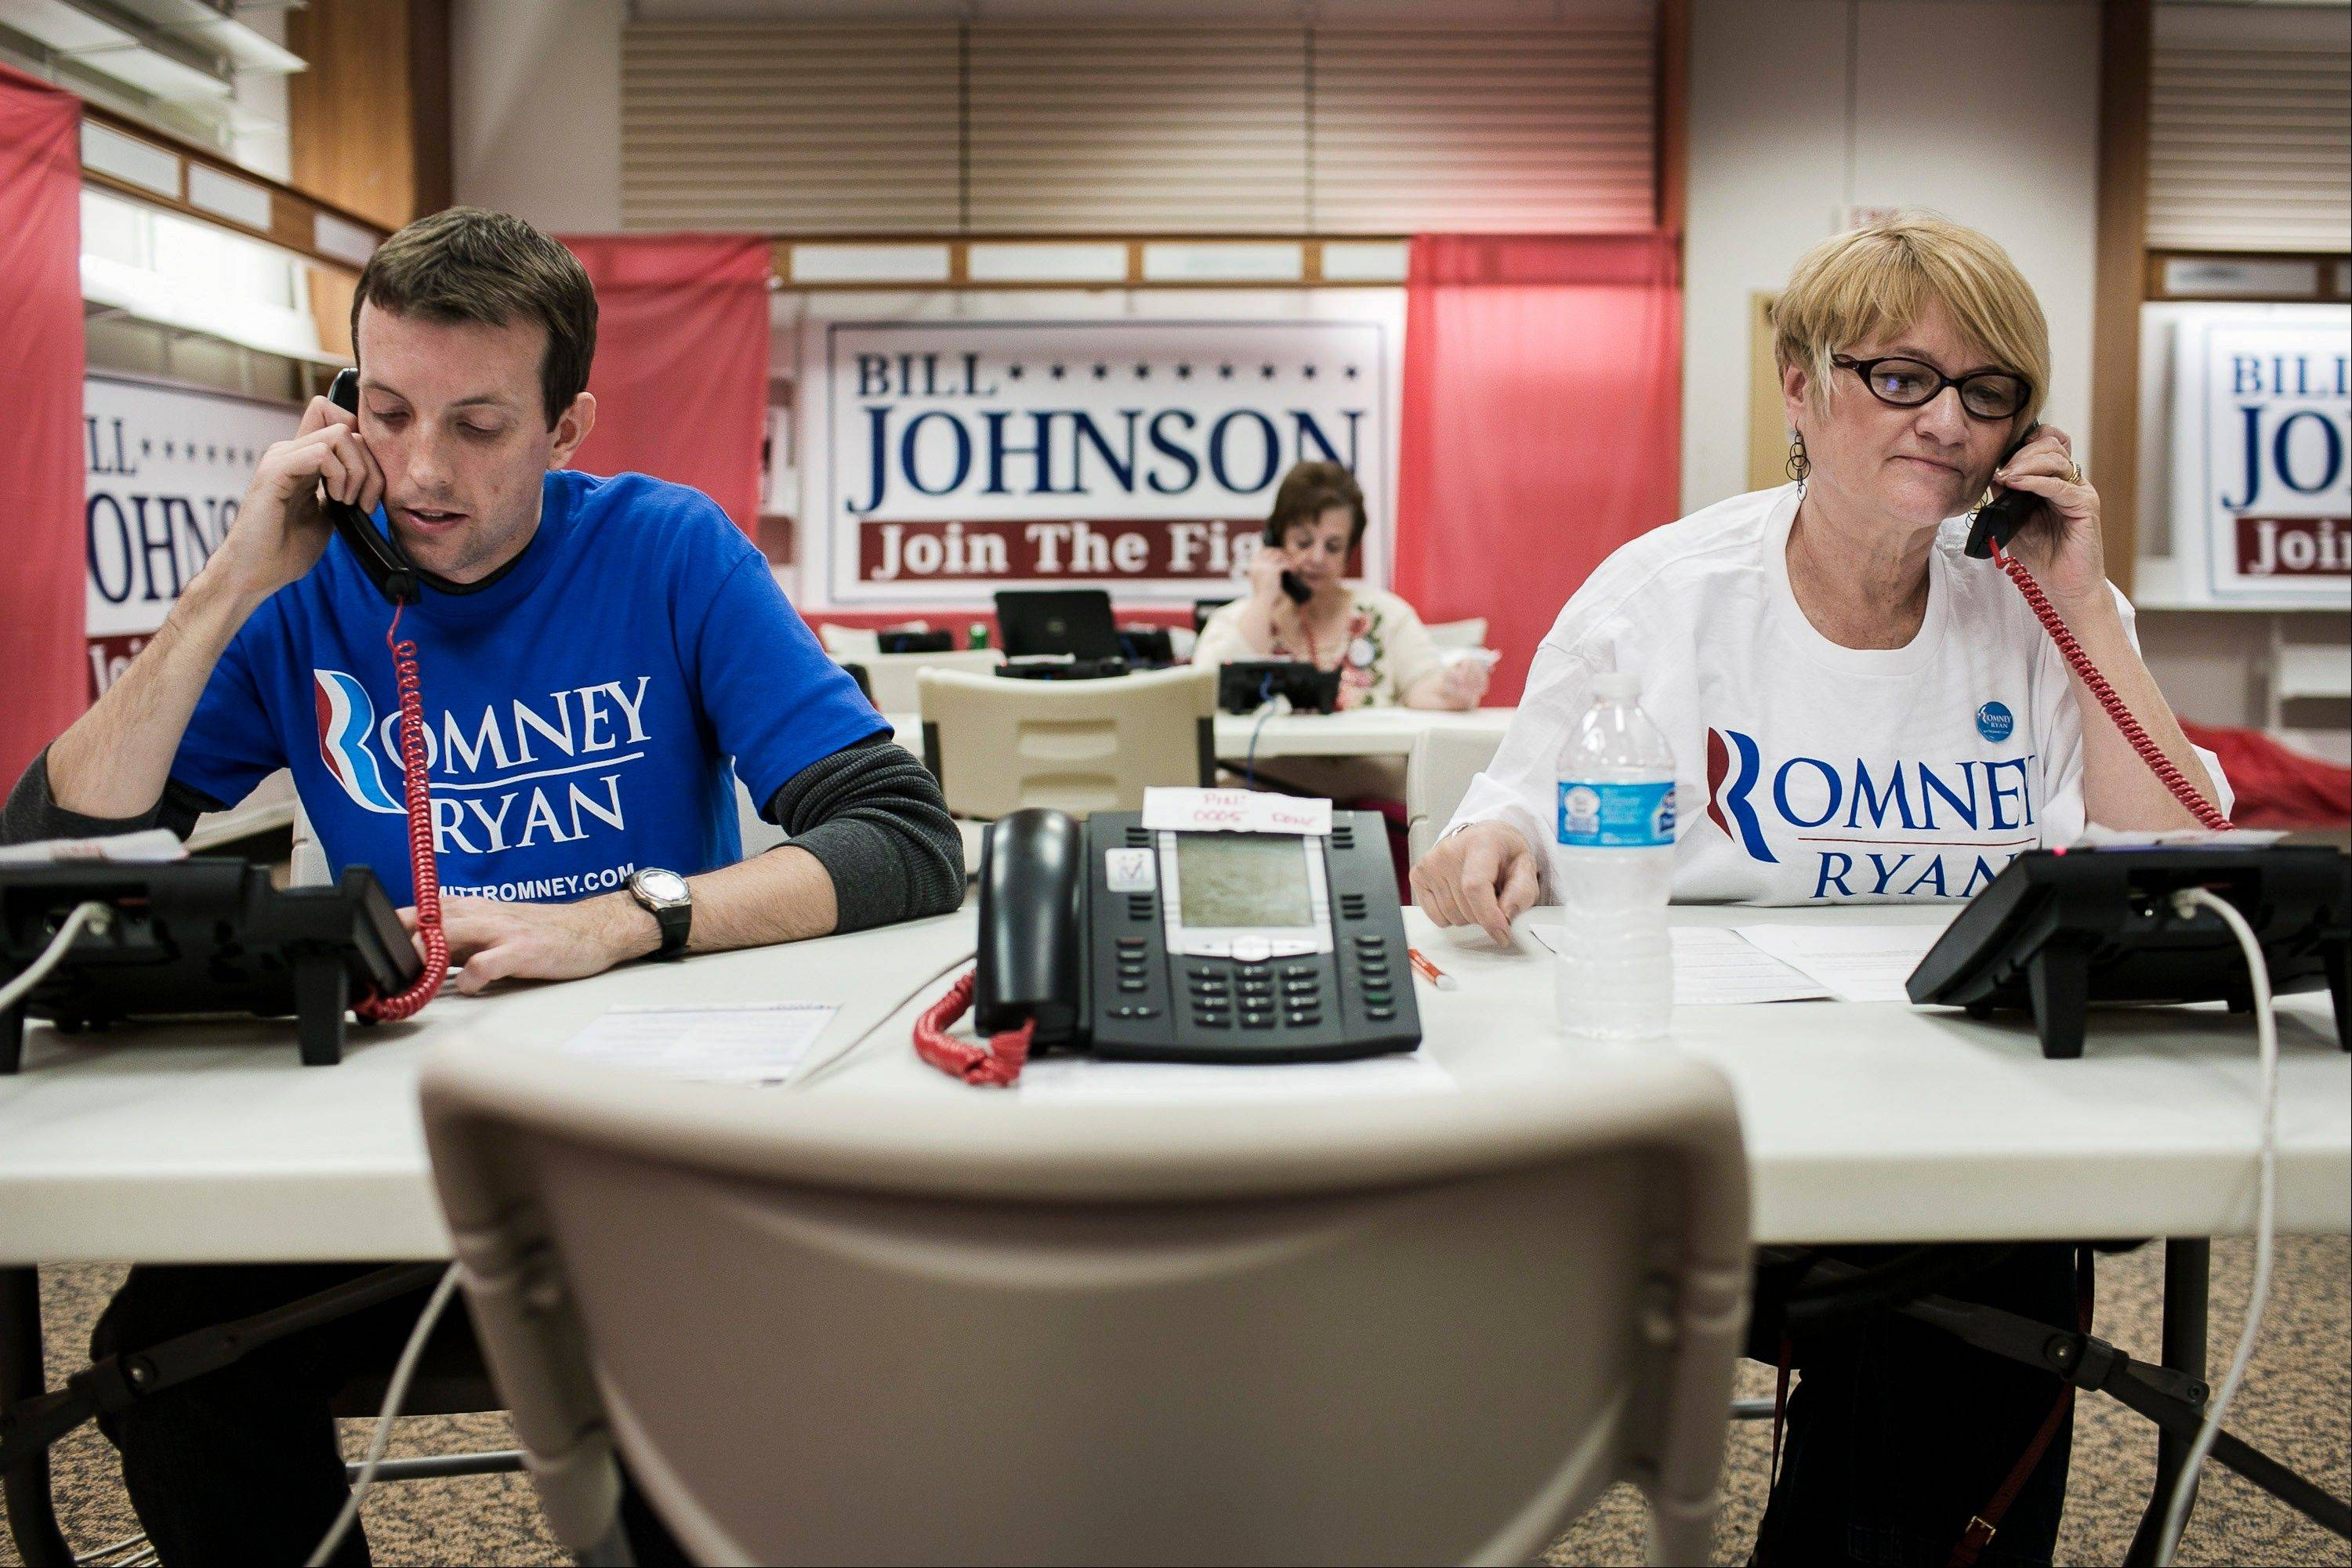 Volunteers Susan Conaway, right, of Toronto, Ohio, and Ryan Call, of Steubenville, Ohio, make phone calls at Republican presidential candidate Mitt Romney�s campaign office in Steubenville, Ohio, U.S., on Wednesday, Oct. 24, 2012.